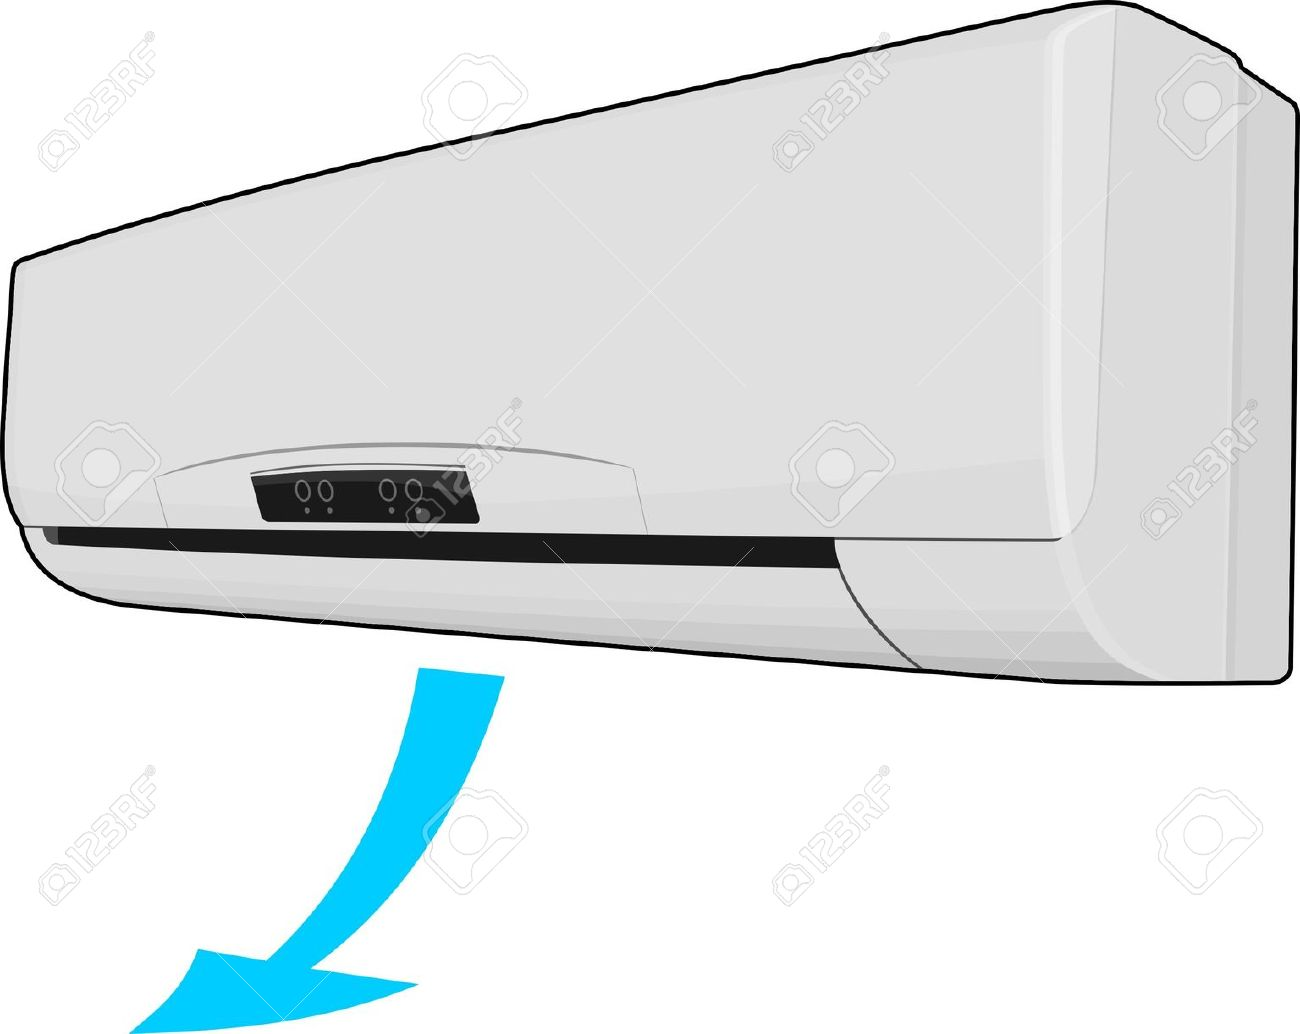 Air conditioner clipart.